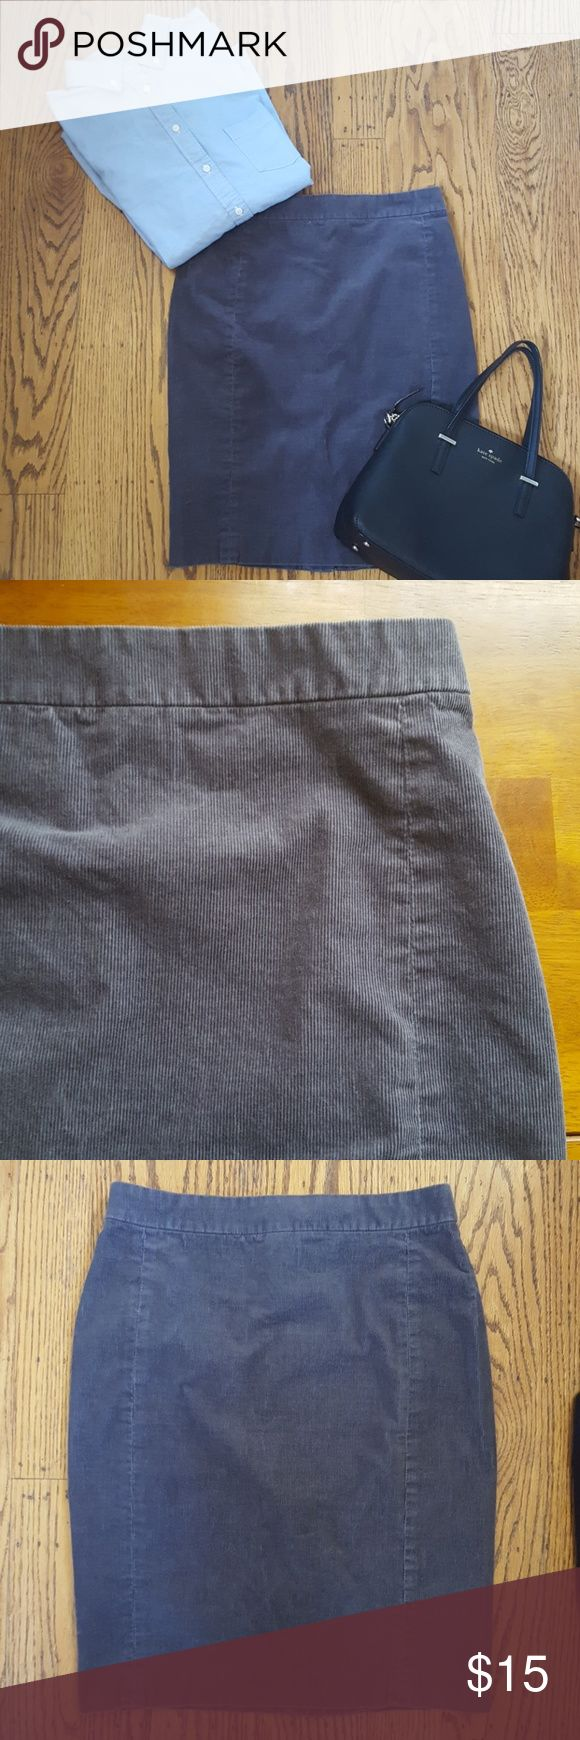 🍁🍂 J Crew Gray Corduroy Pencil Skirt 2 Cute fall basic for your capsule wardrobe. Back zip and slit. Laid flat measures 14 inches across waist and 21 inches long, 18 inches across hips. Second picture shows best color representation. Good preowned condition. There is some slight variation in the color throughout. J. Crew Skirts Pencil